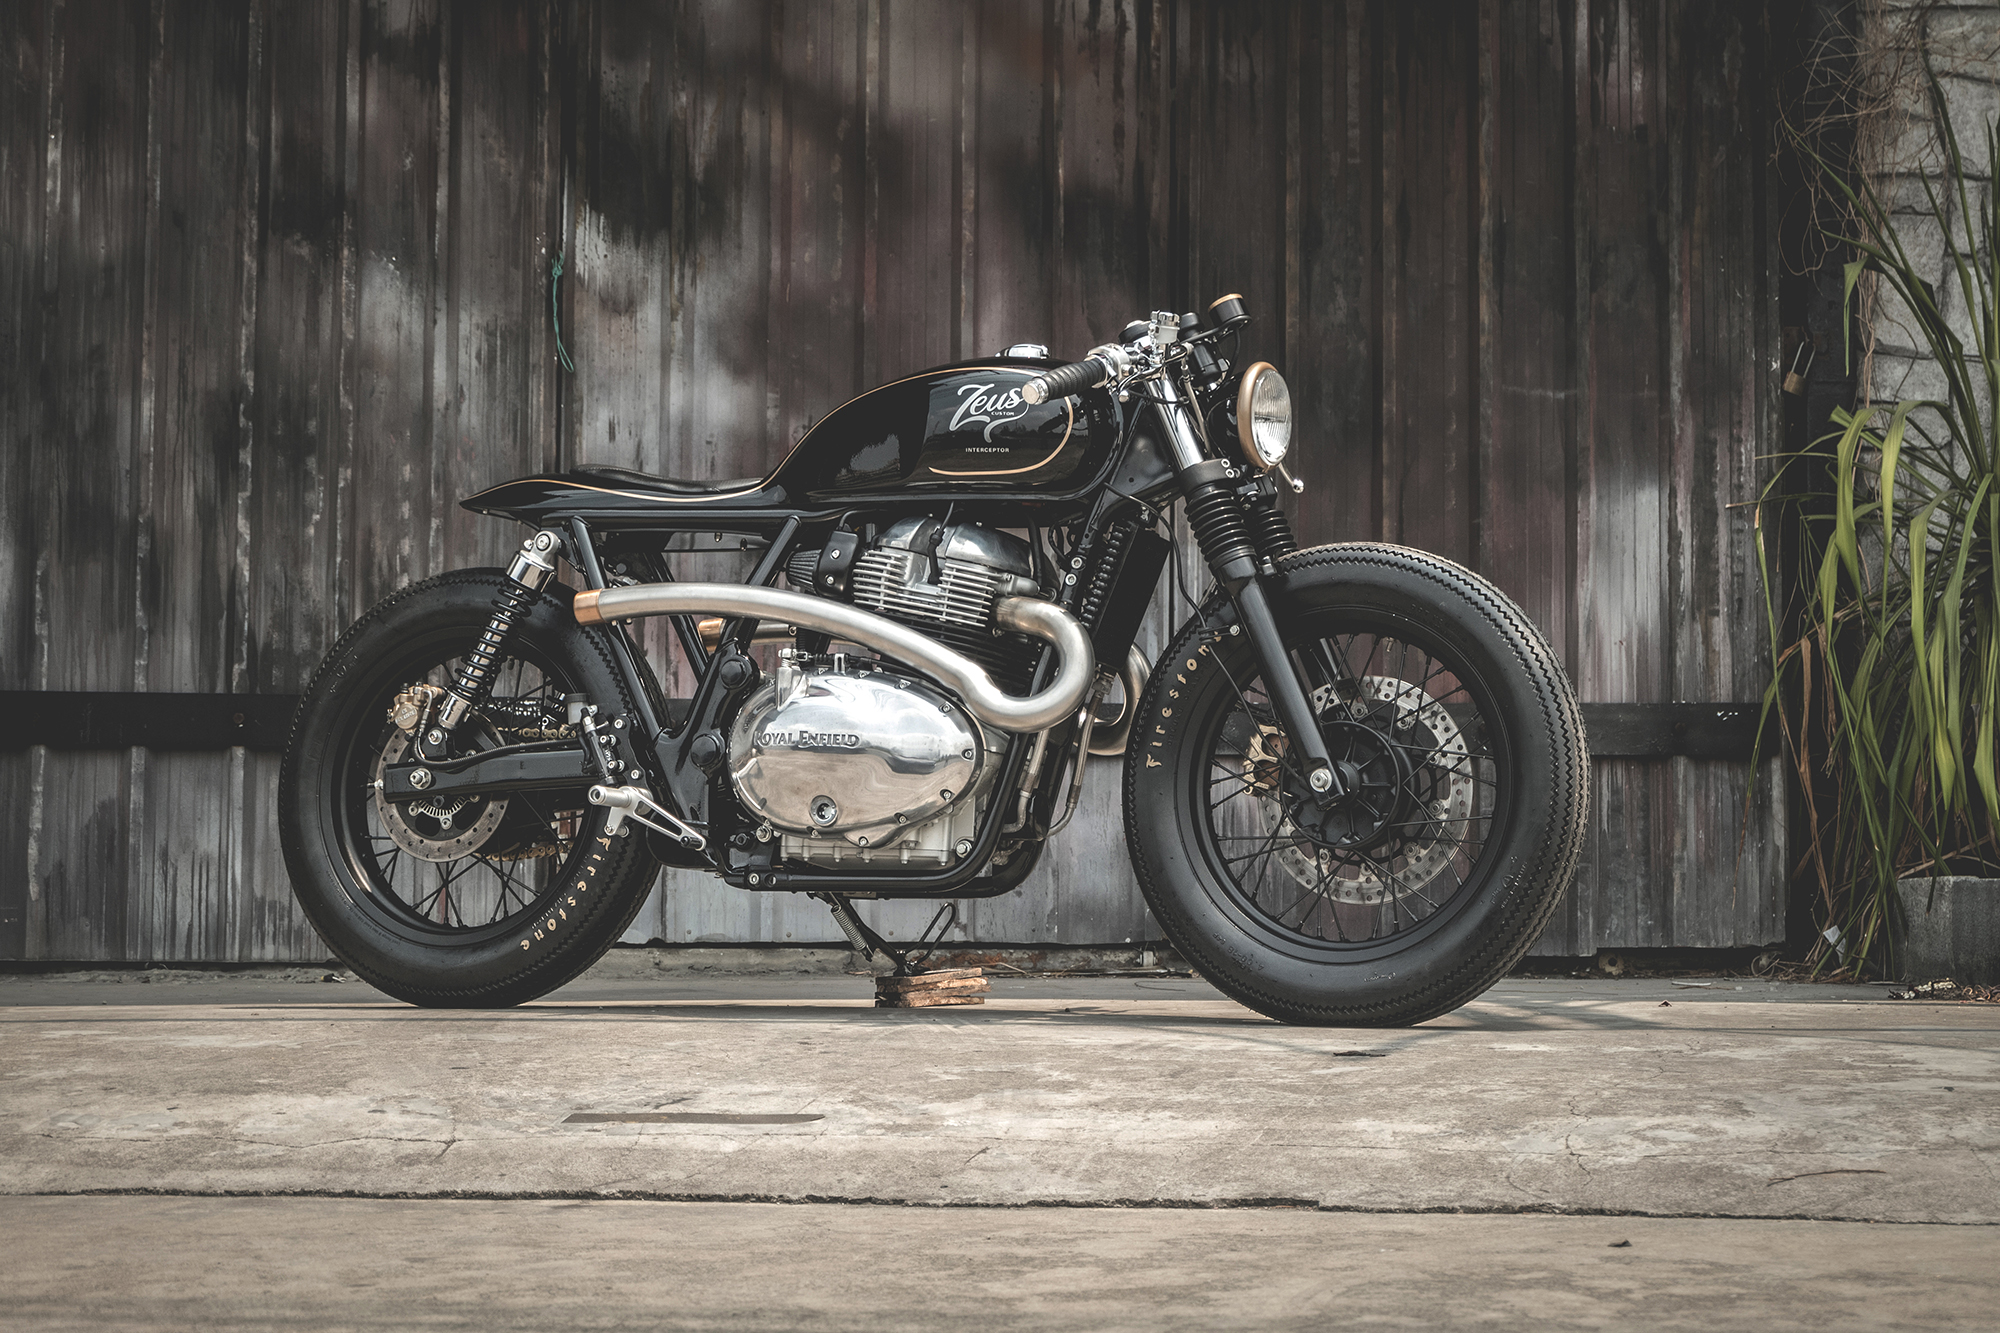 THE PRIME PROJECT' - Royal Enfield Interceptor x Zeus